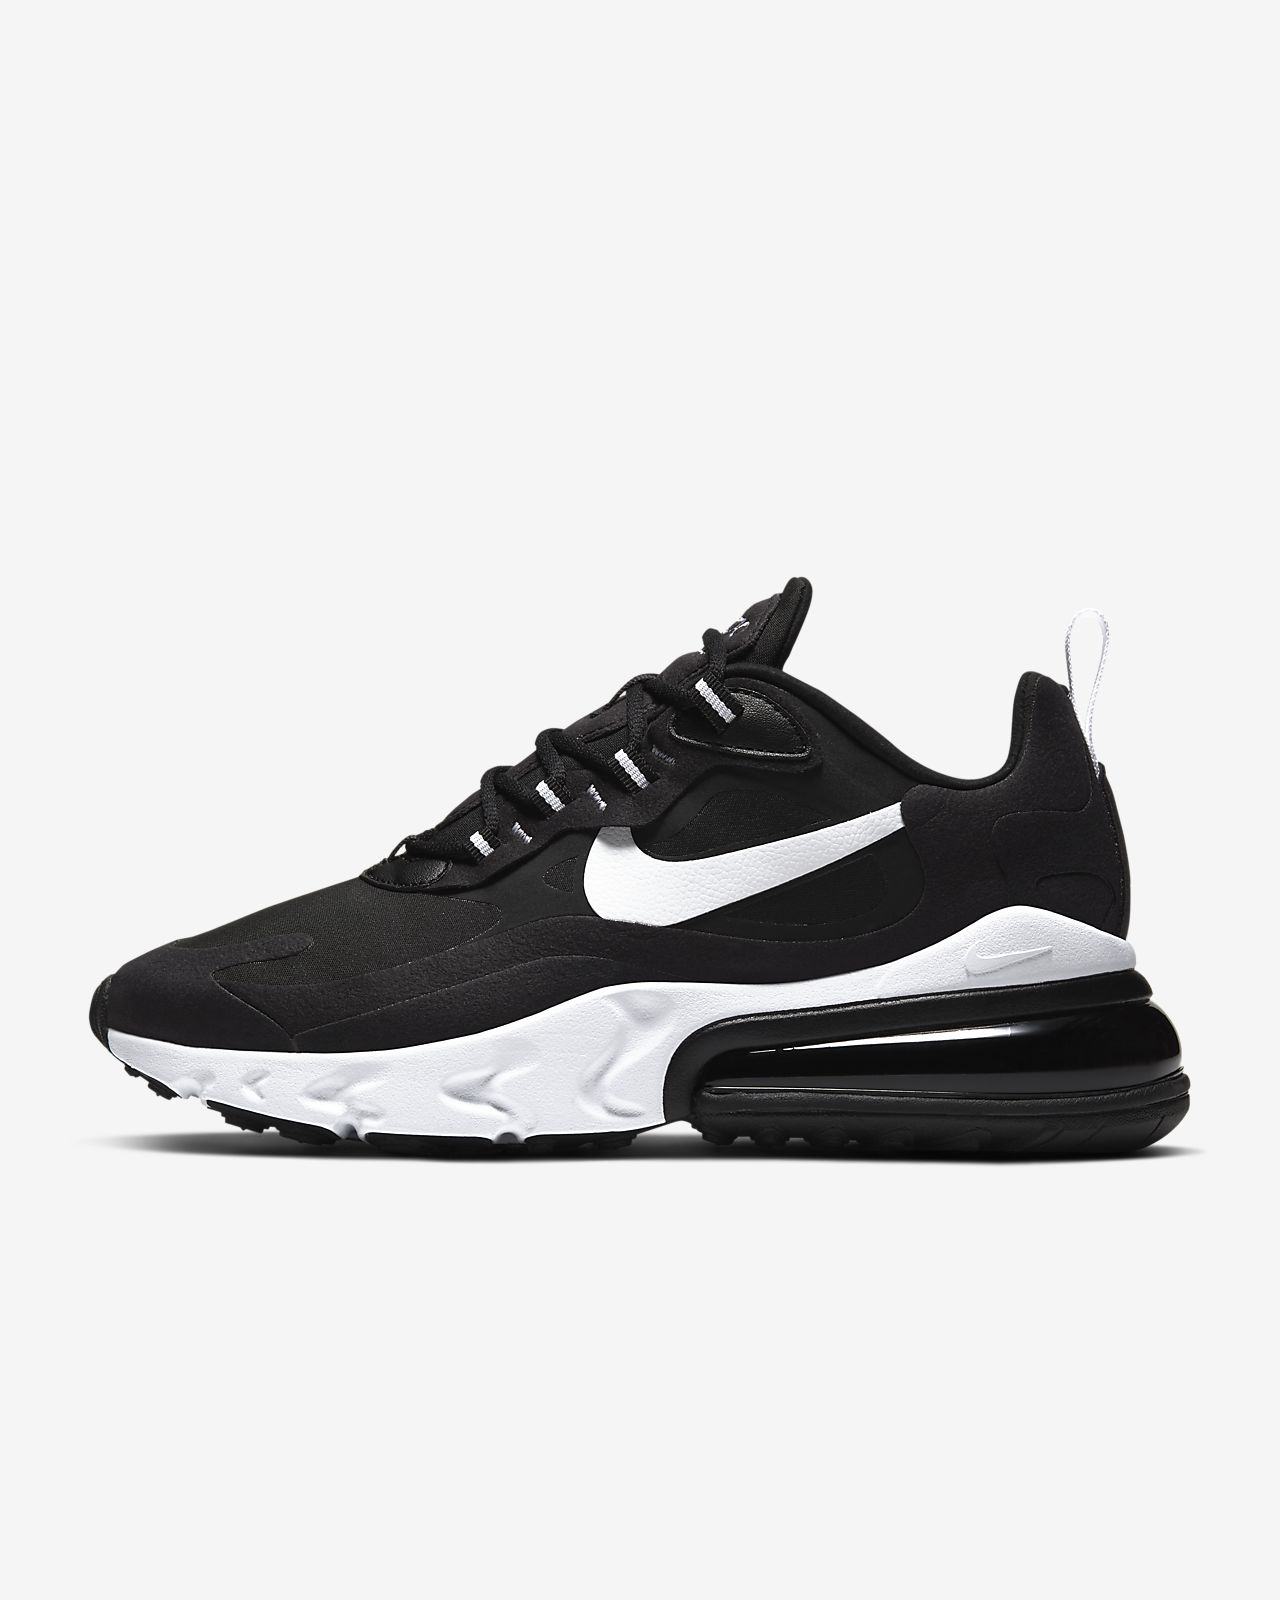 Nike Black Friday 2019. Nike MX